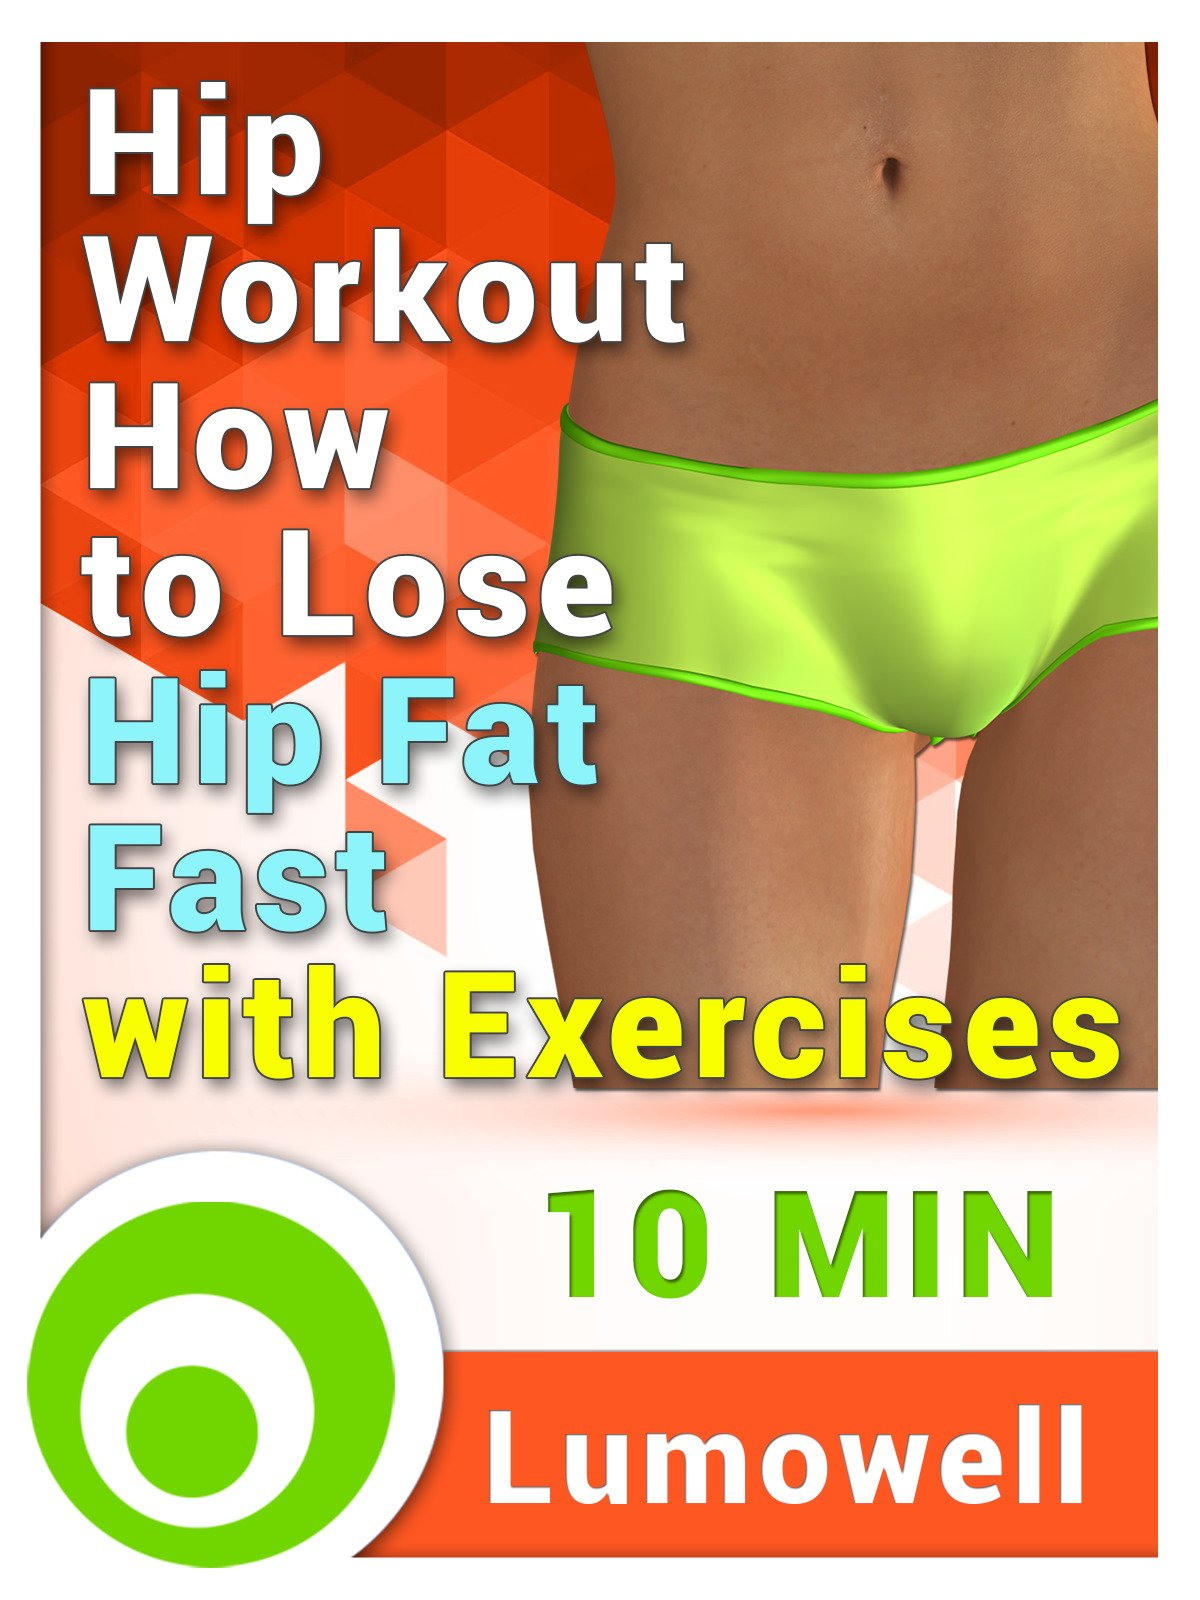 Hip Workout: How to Lose Hip Fat Fast with Exercises on Amazon Prime Instant Video UK